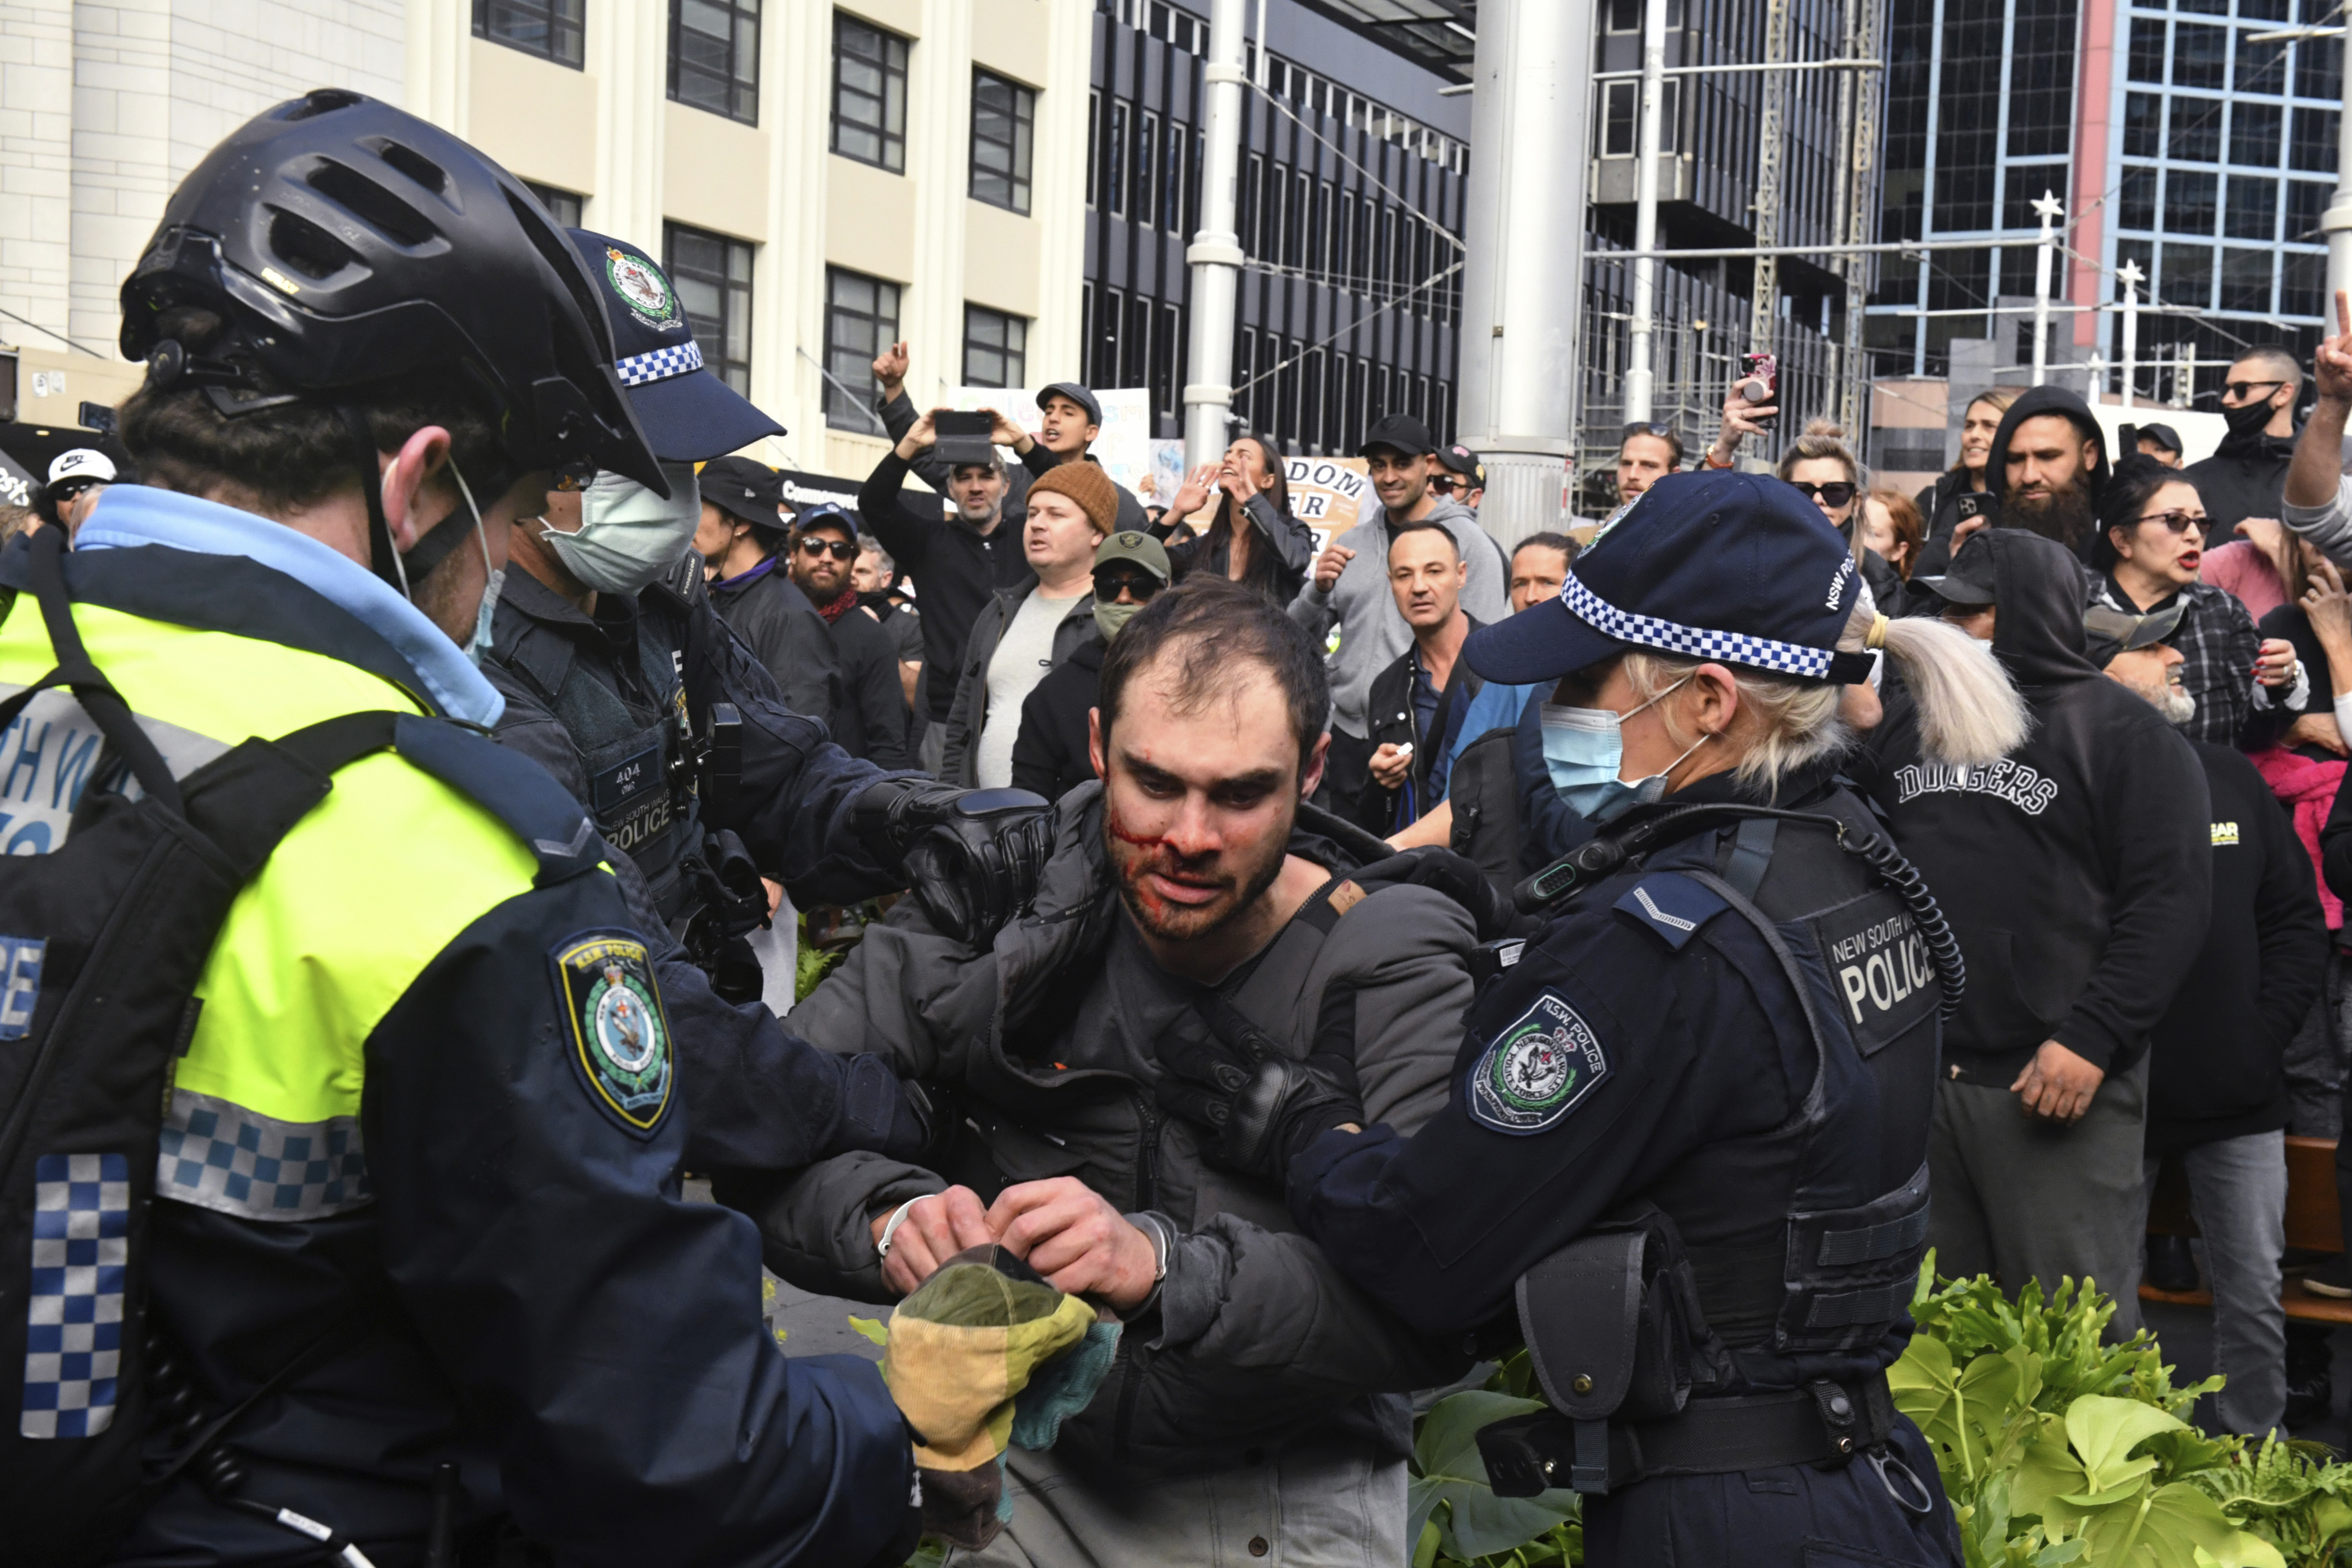 A protester, center, is arrested by police at a demonstration at Sydney Town Hall during a 'World Wide Rally For Freedom' anti-lockdown rally in Sydney, on, July 24, 2021.